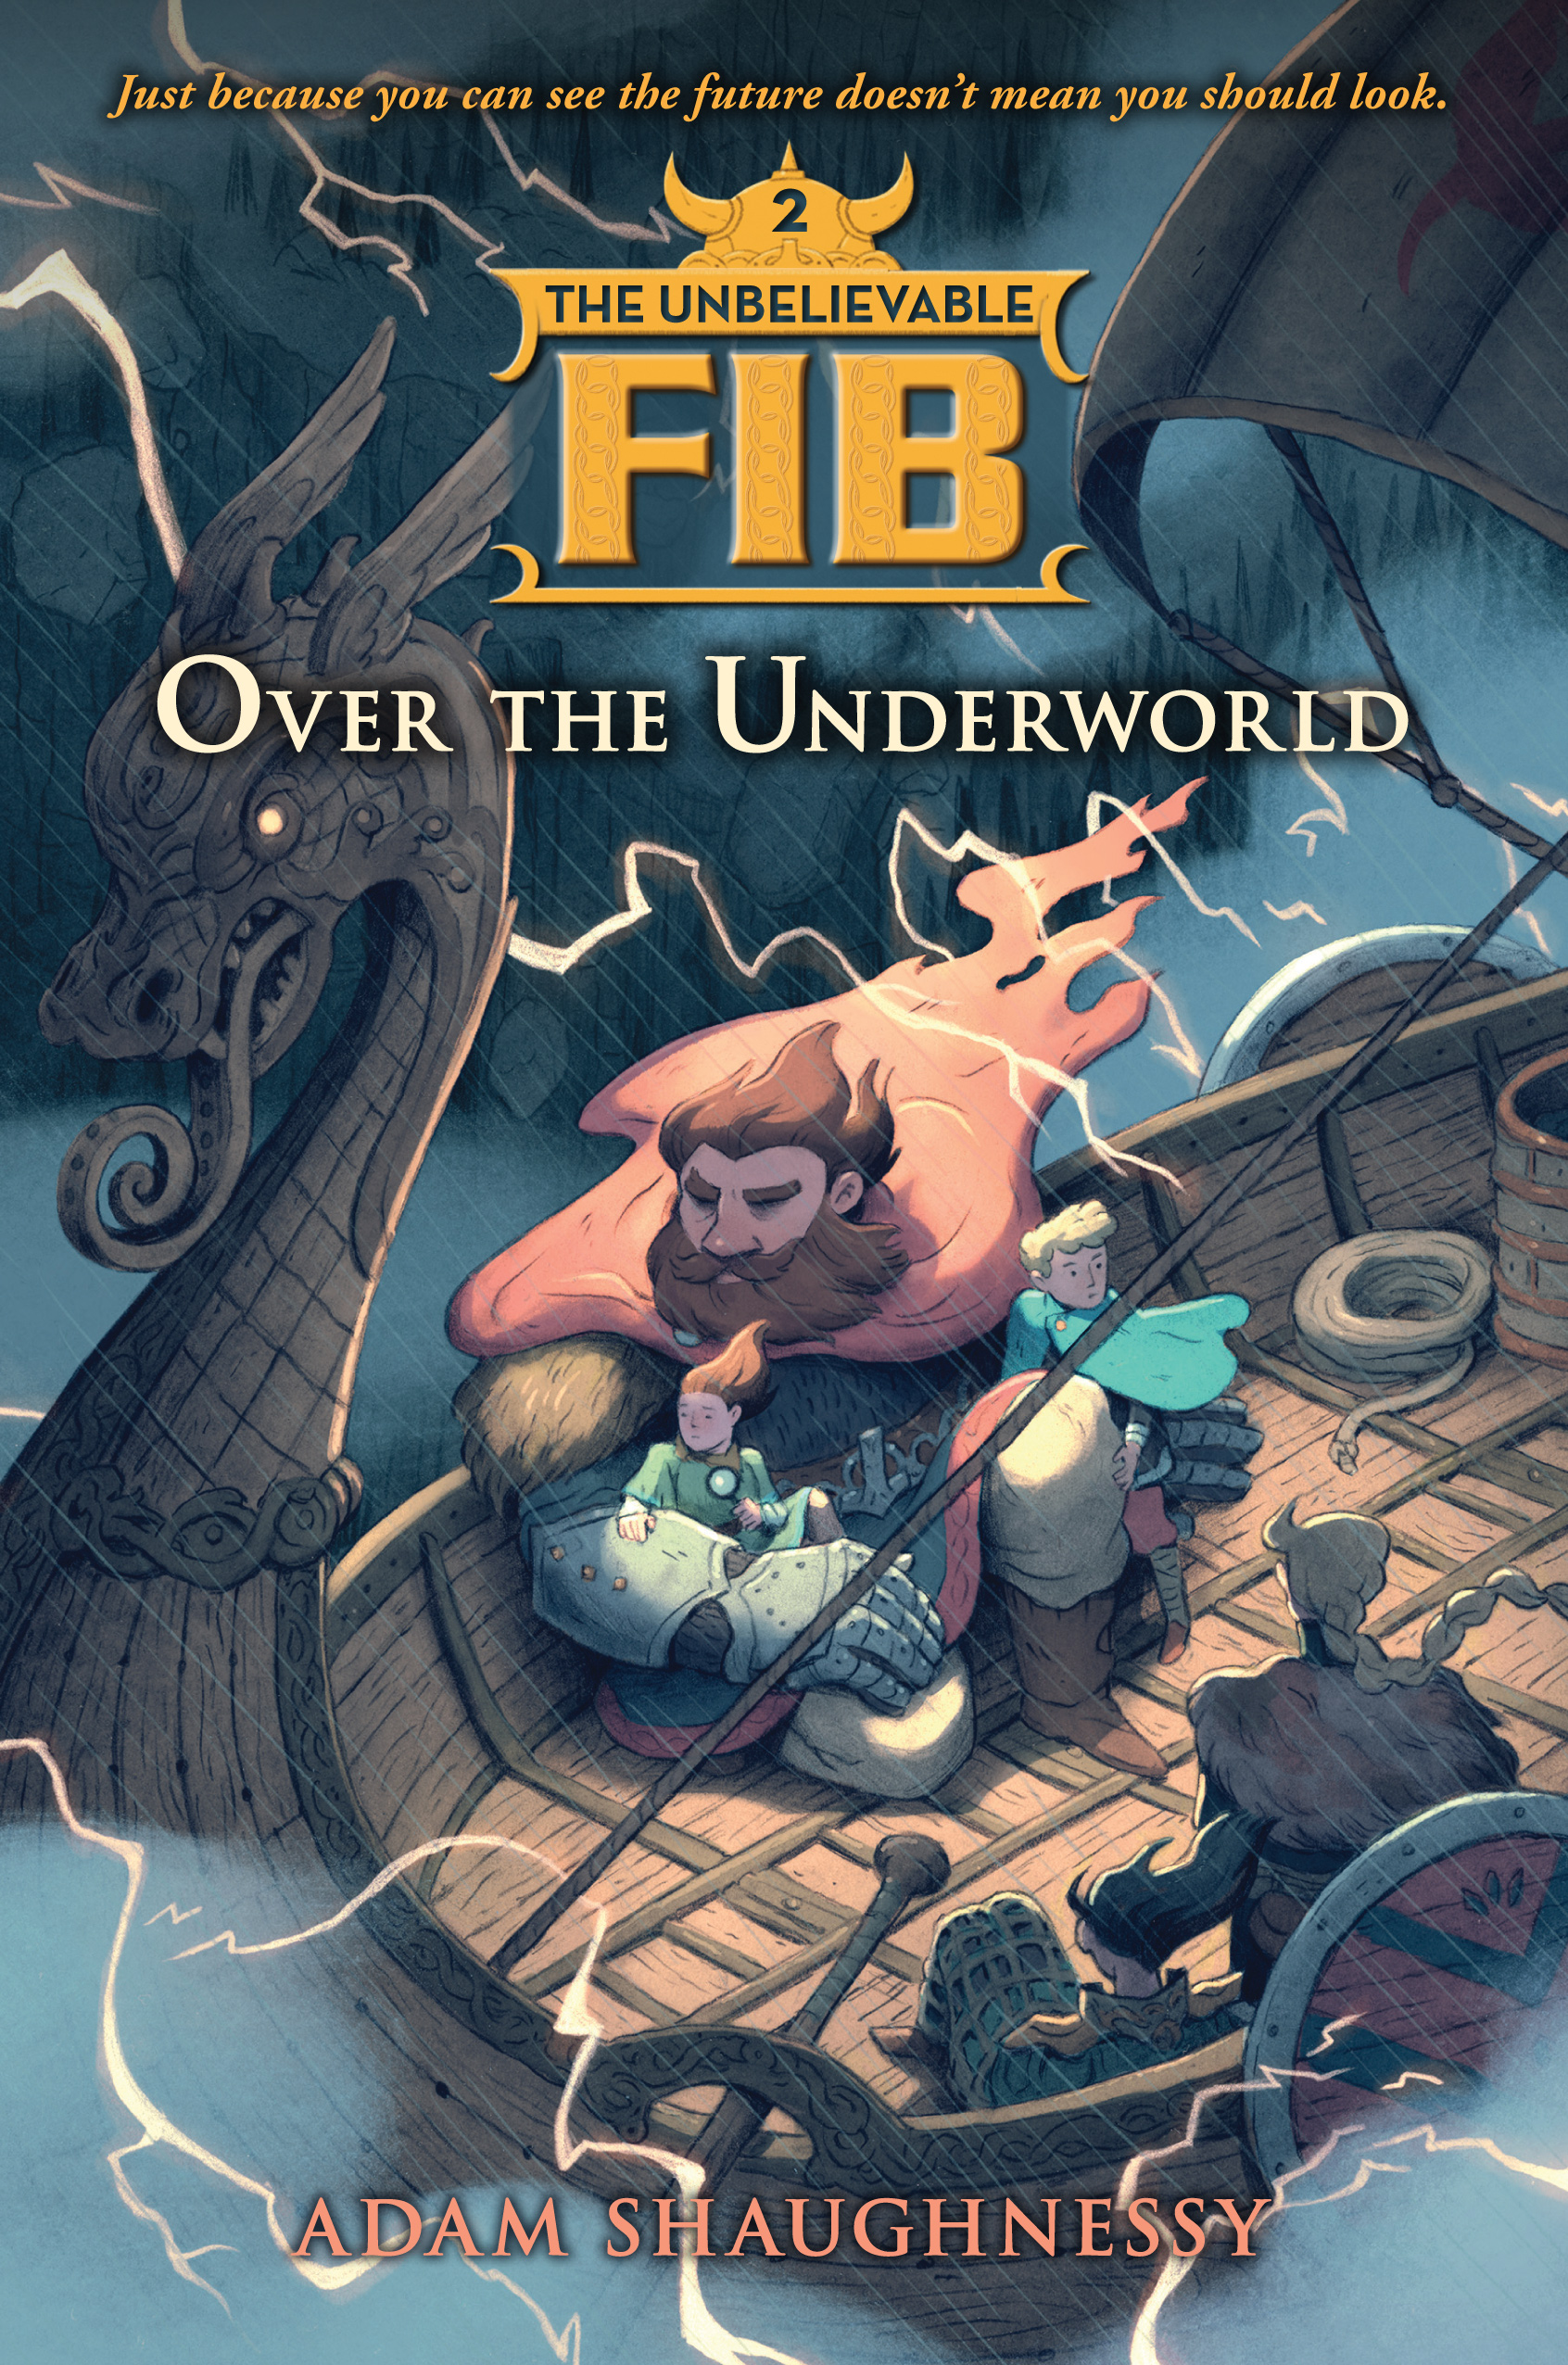 The Unbelievable FIB 2: Over the Underworld